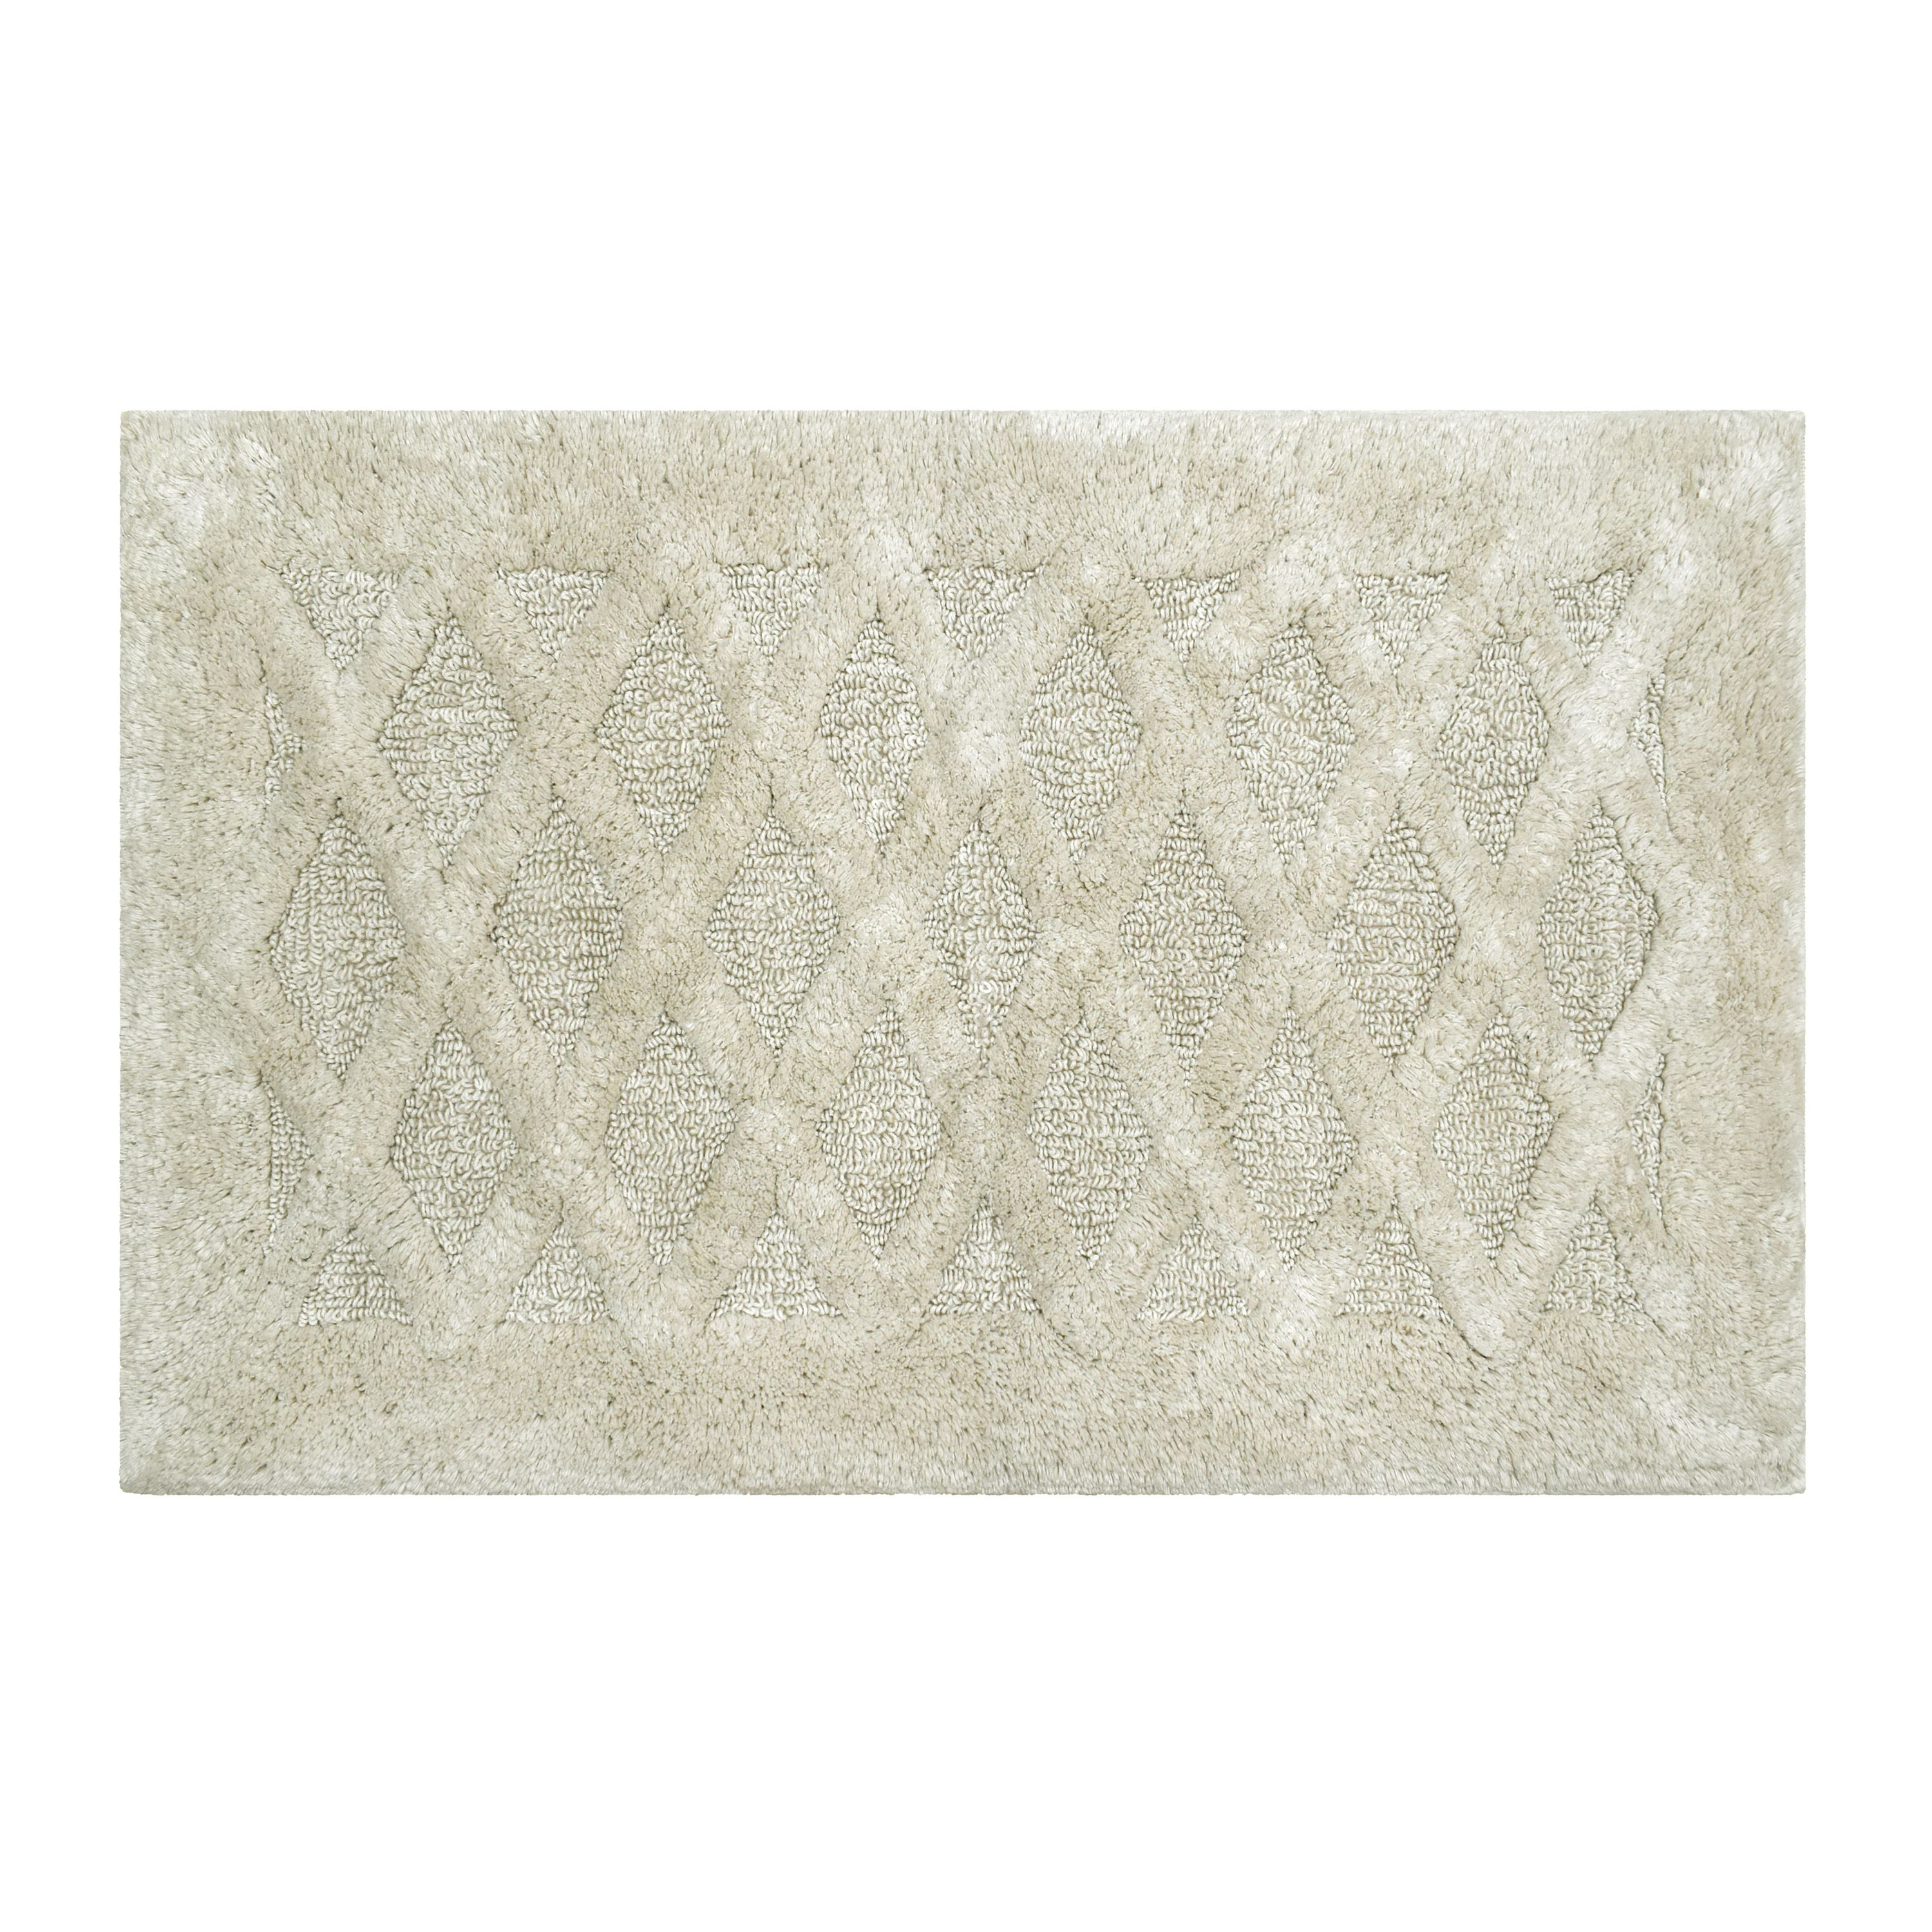 Free 2 Day Shipping On Qualified Orders Over 35 Buy Better Homes Gardens Diamond Texture Bath Rug Beige At W Bath Rug Better Homes Gardens Better Homes [ 3000 x 3000 Pixel ]